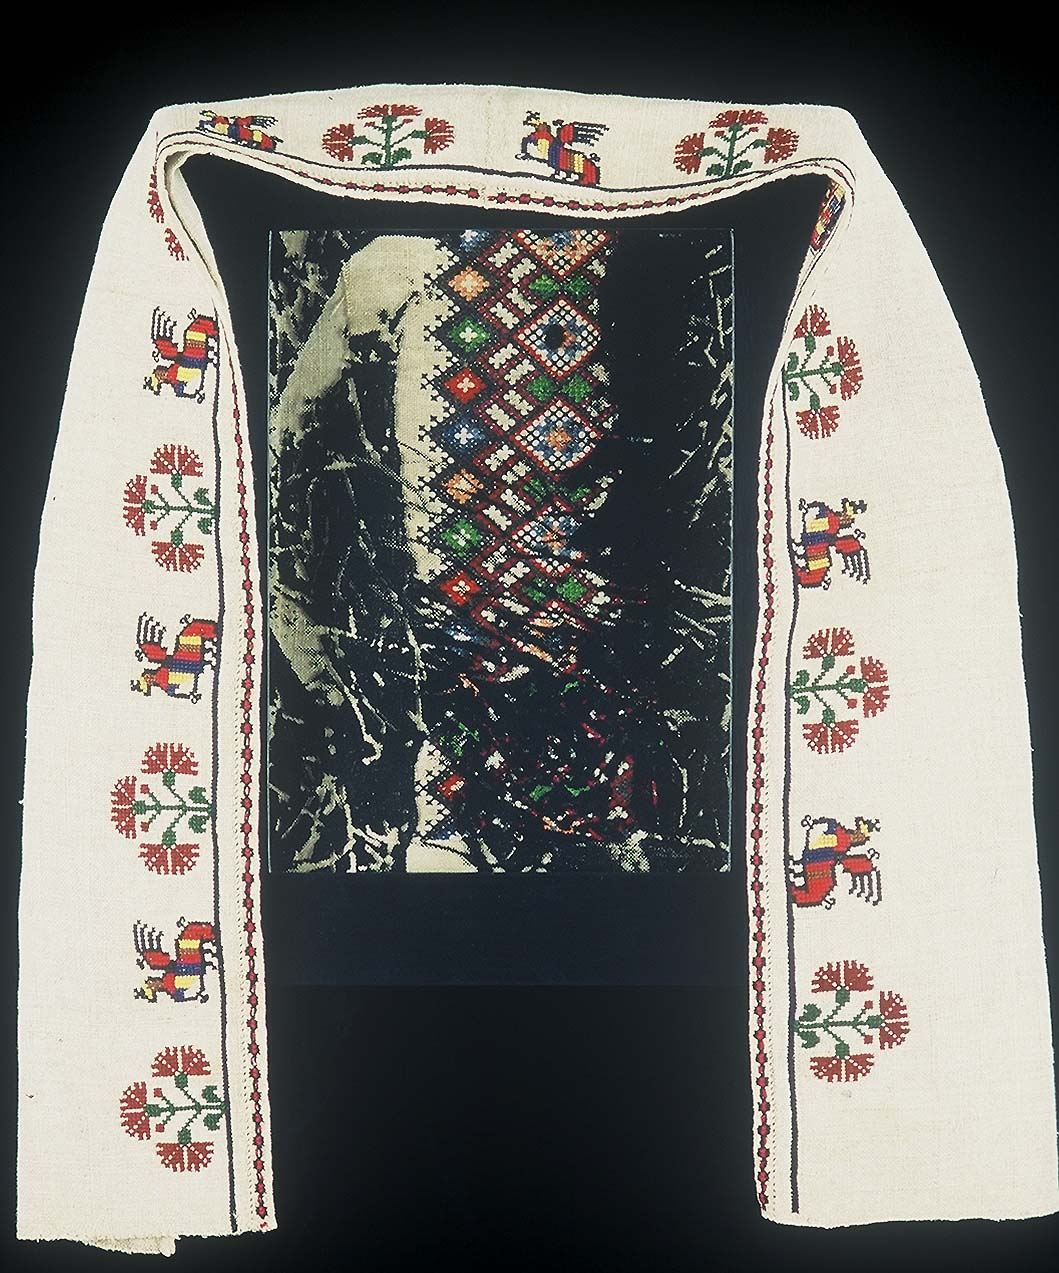 5ab(0) - Another Kind of Icon #1, embroidery, photocopy, wood, 13x10 in., 1995.jpg